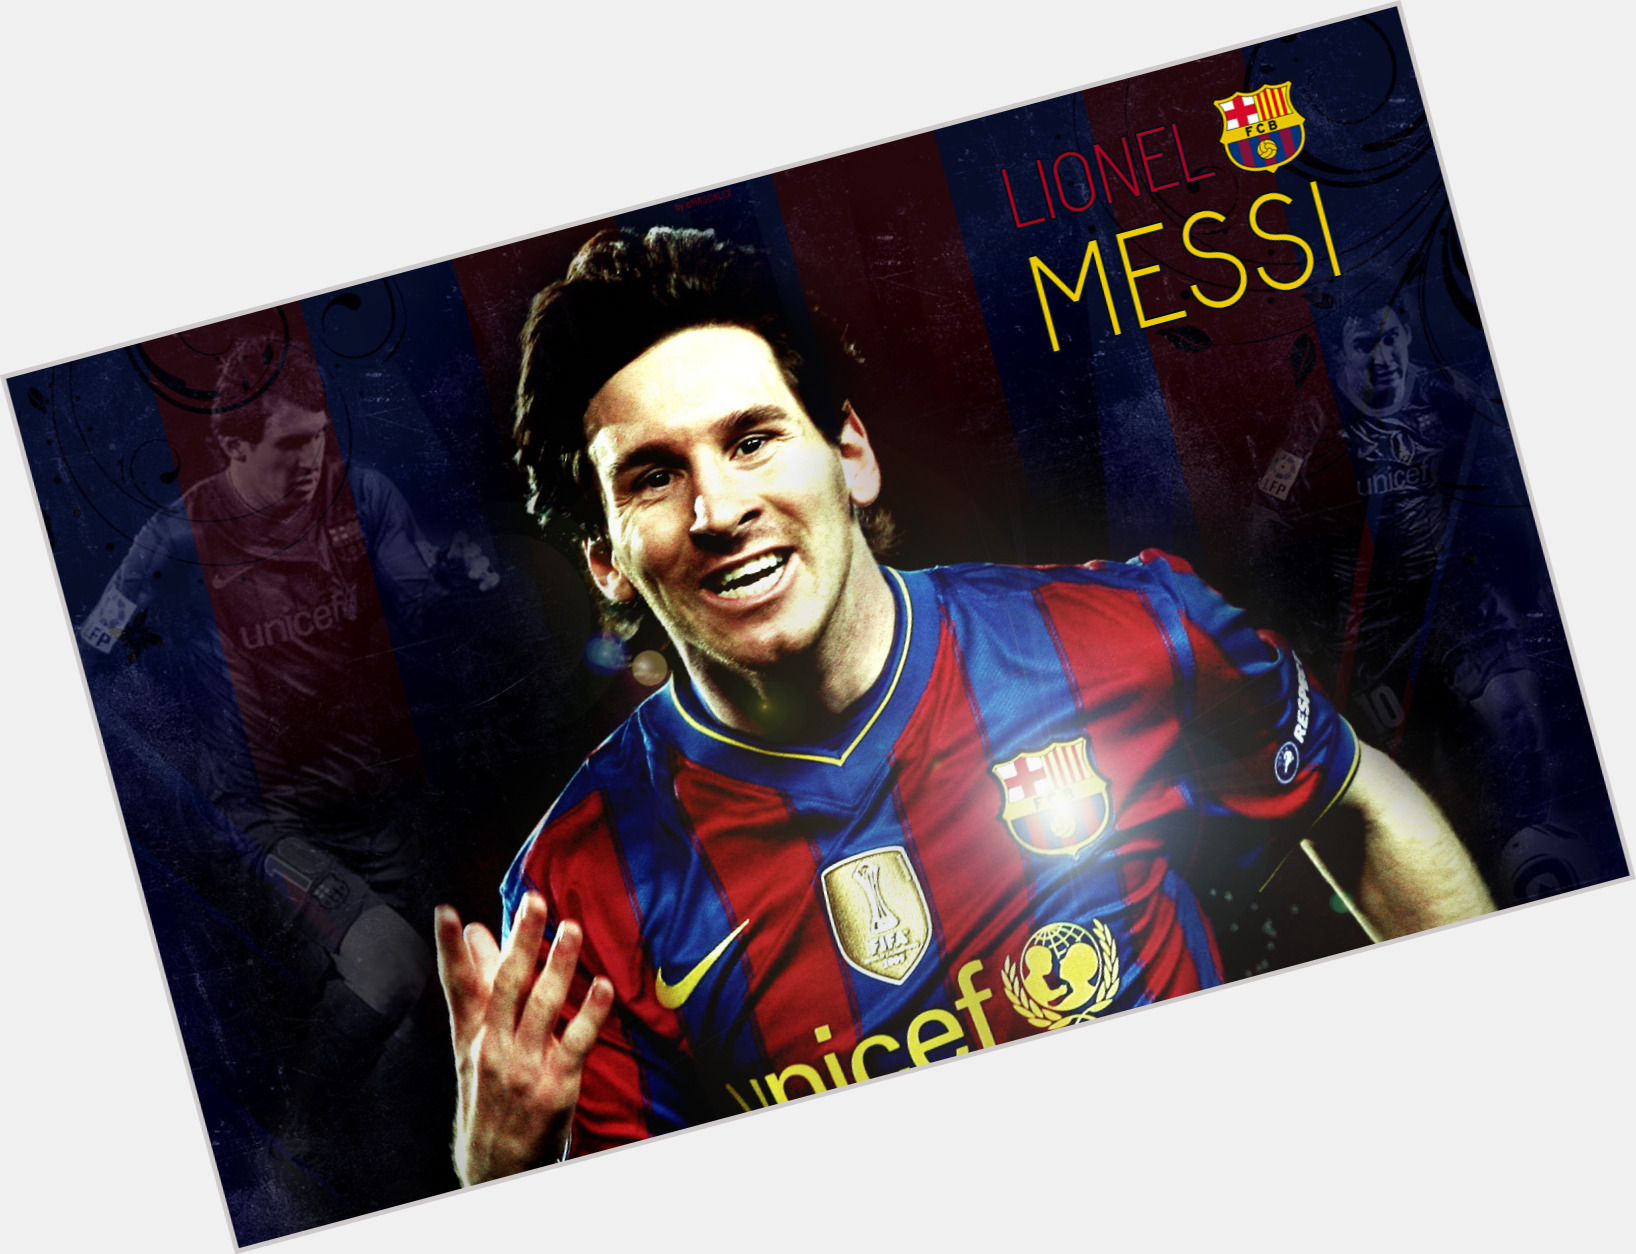 Lionel Messi birthday 2015